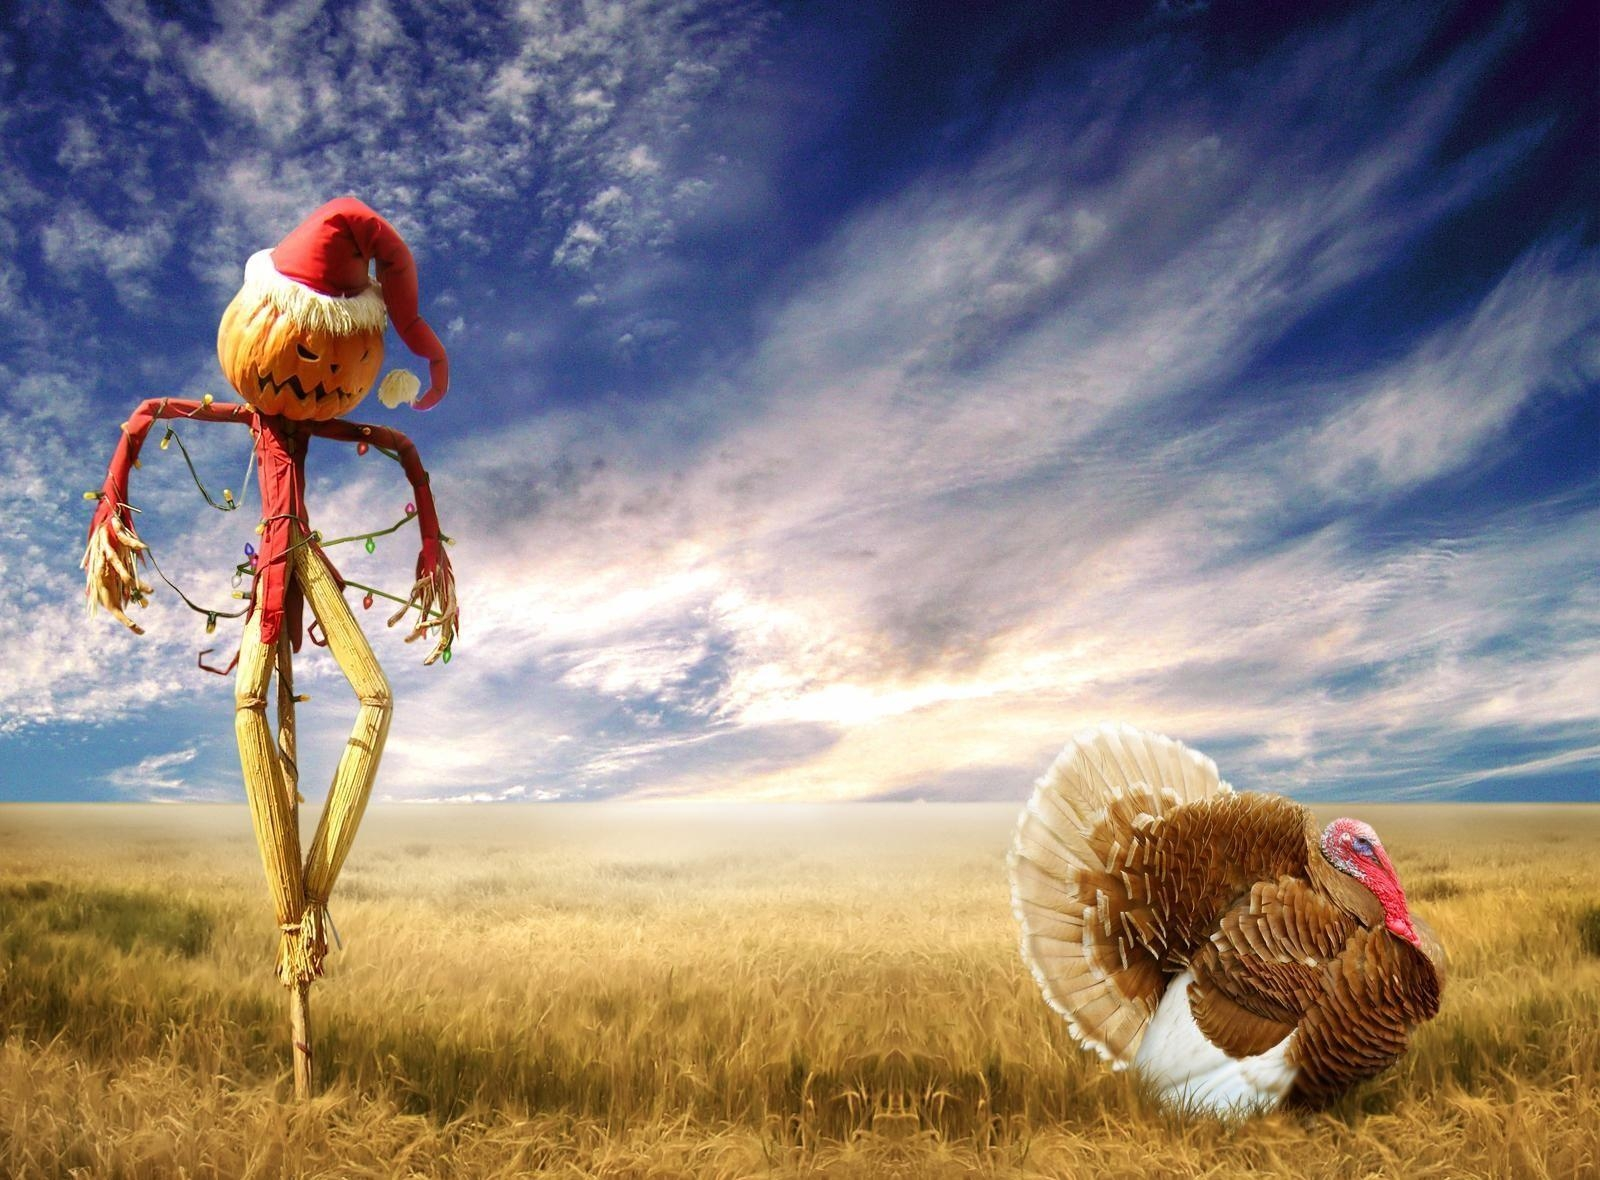 157697 download wallpaper Holidays, Sky, Halloween, Holiday, Field, Turkey, Scarecrow screensavers and pictures for free